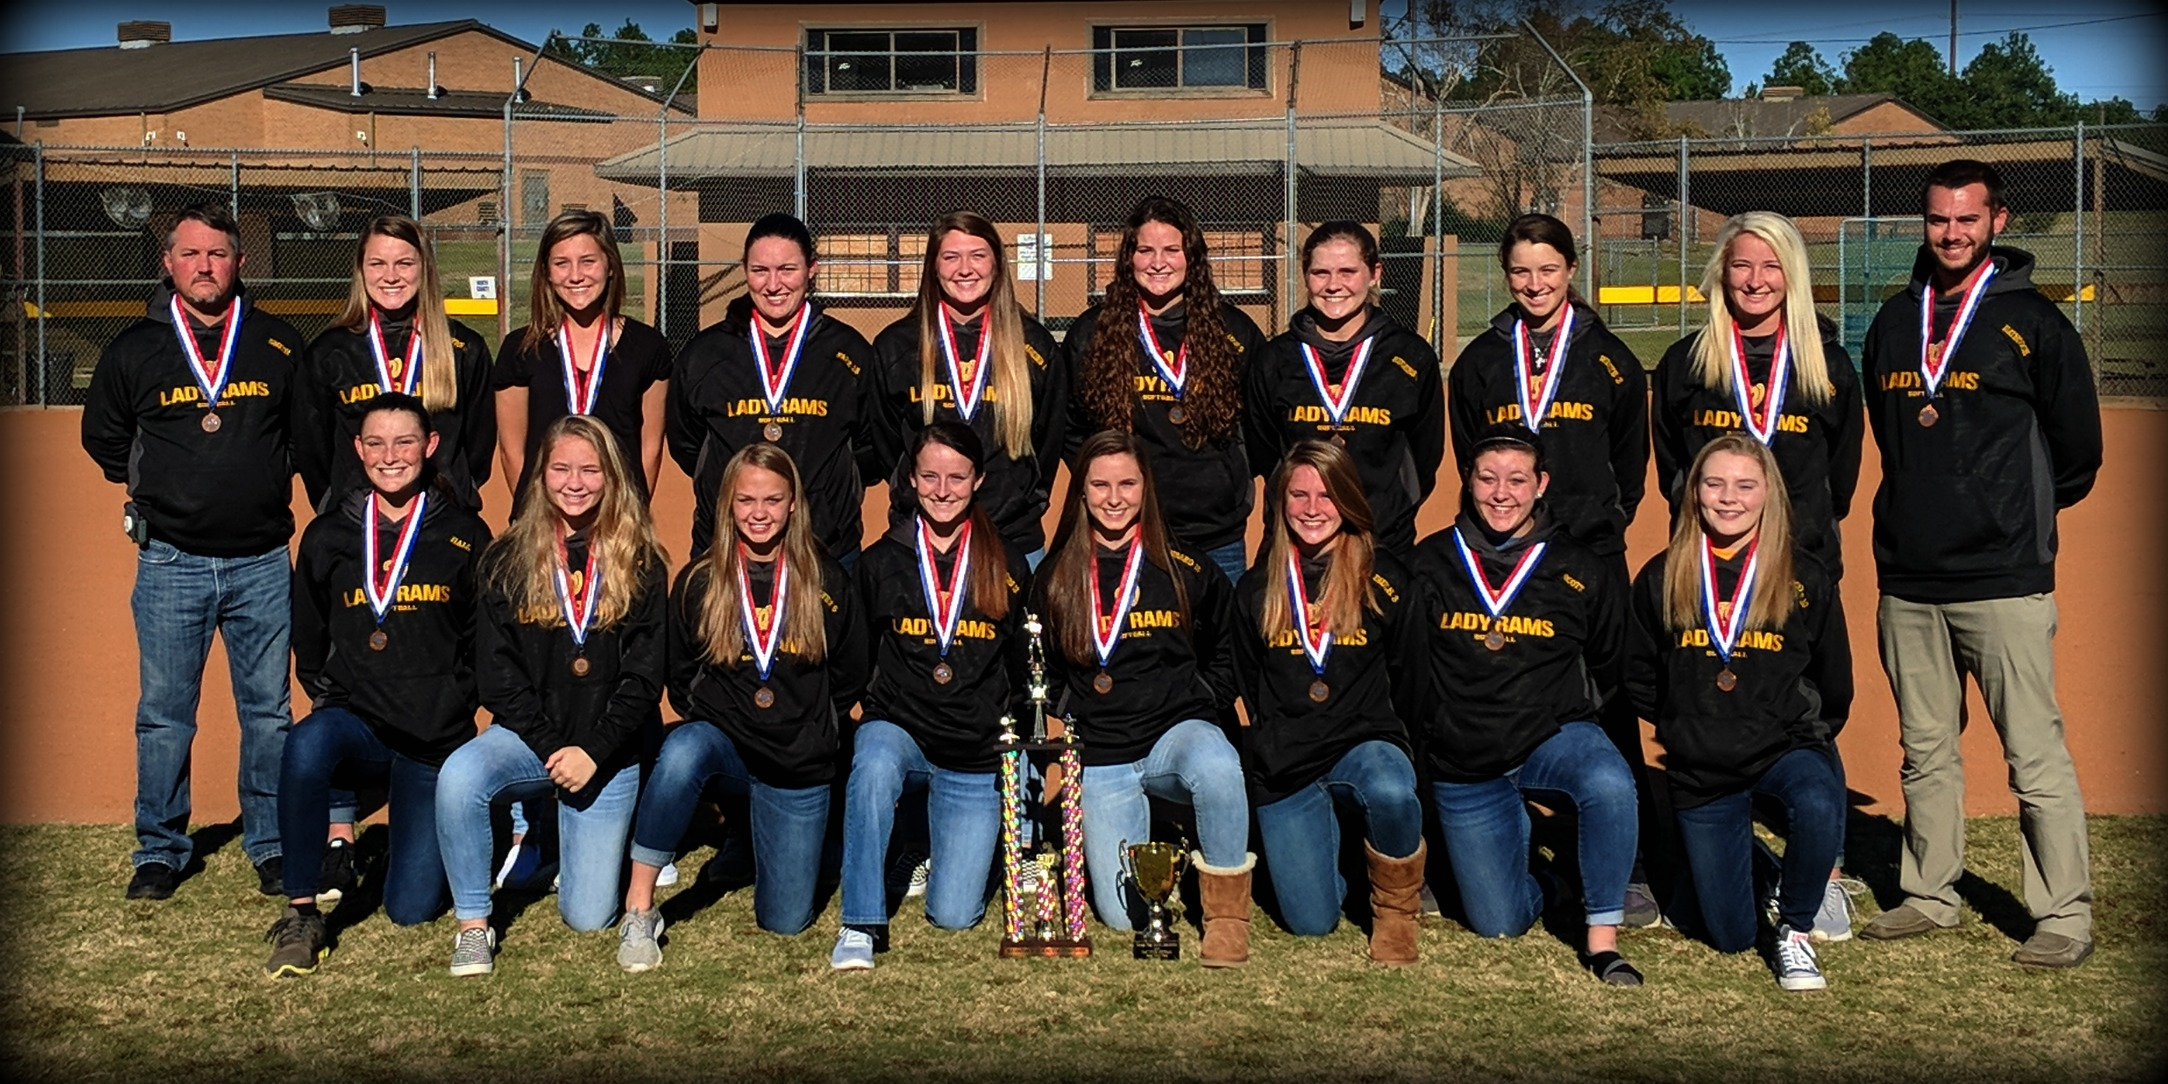 WCHS Softball Team 3rd Place State